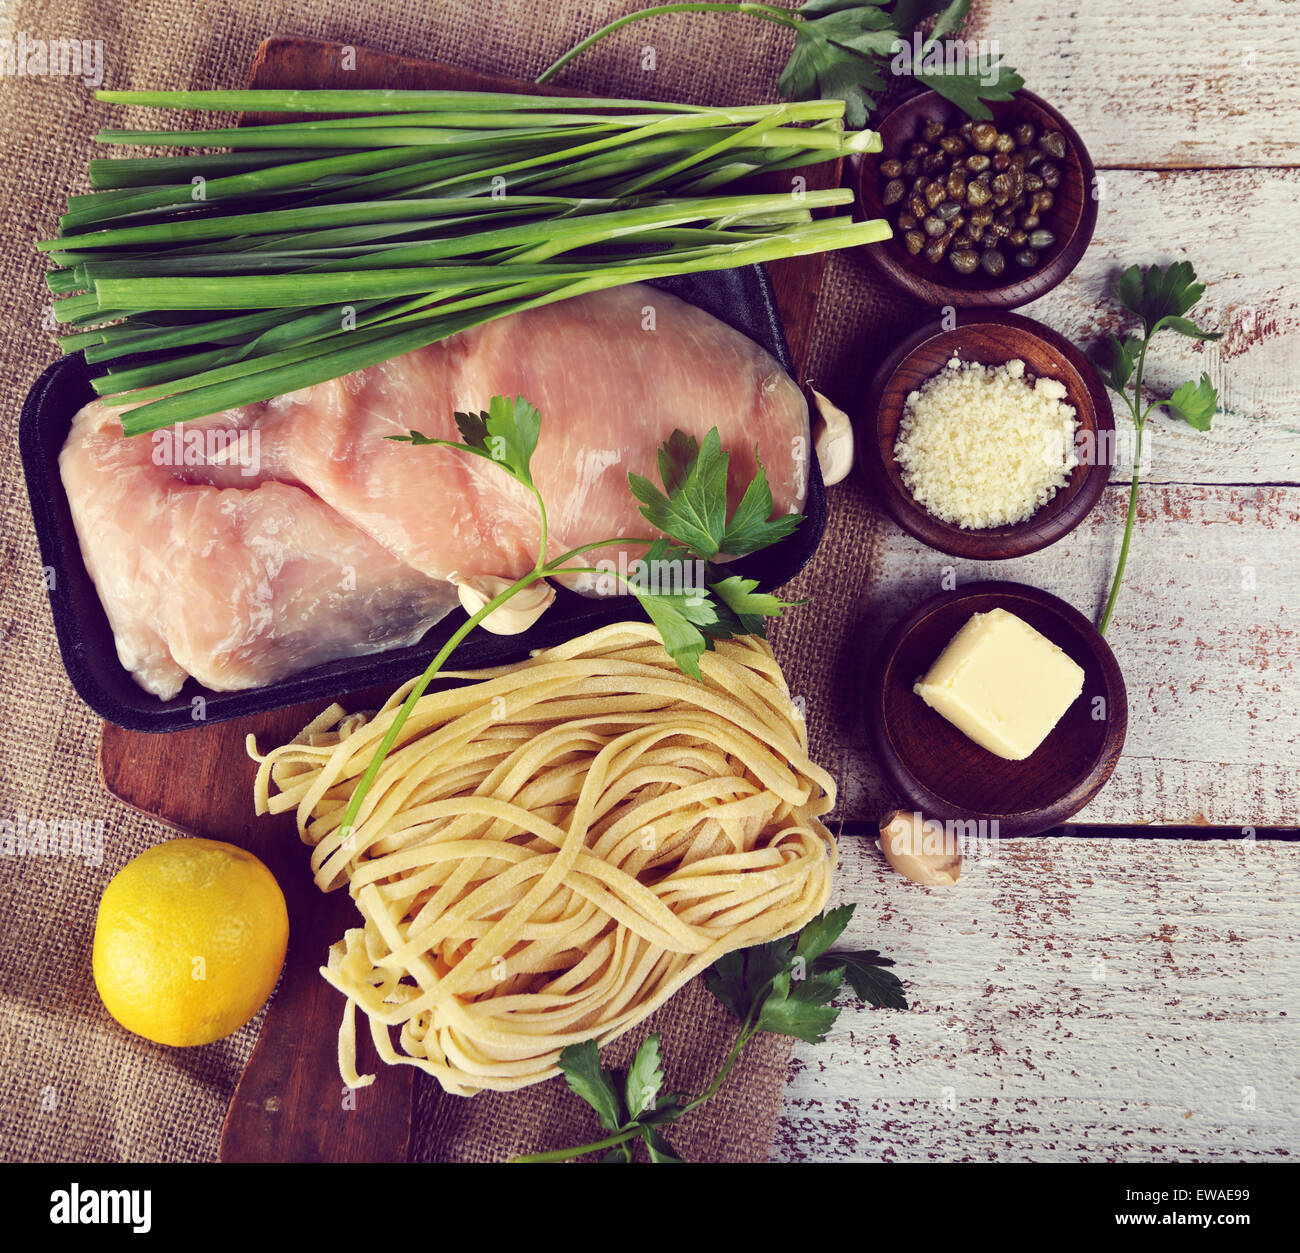 Cooking Ingredients With Chicken Fillets And Pasta - Stock Image